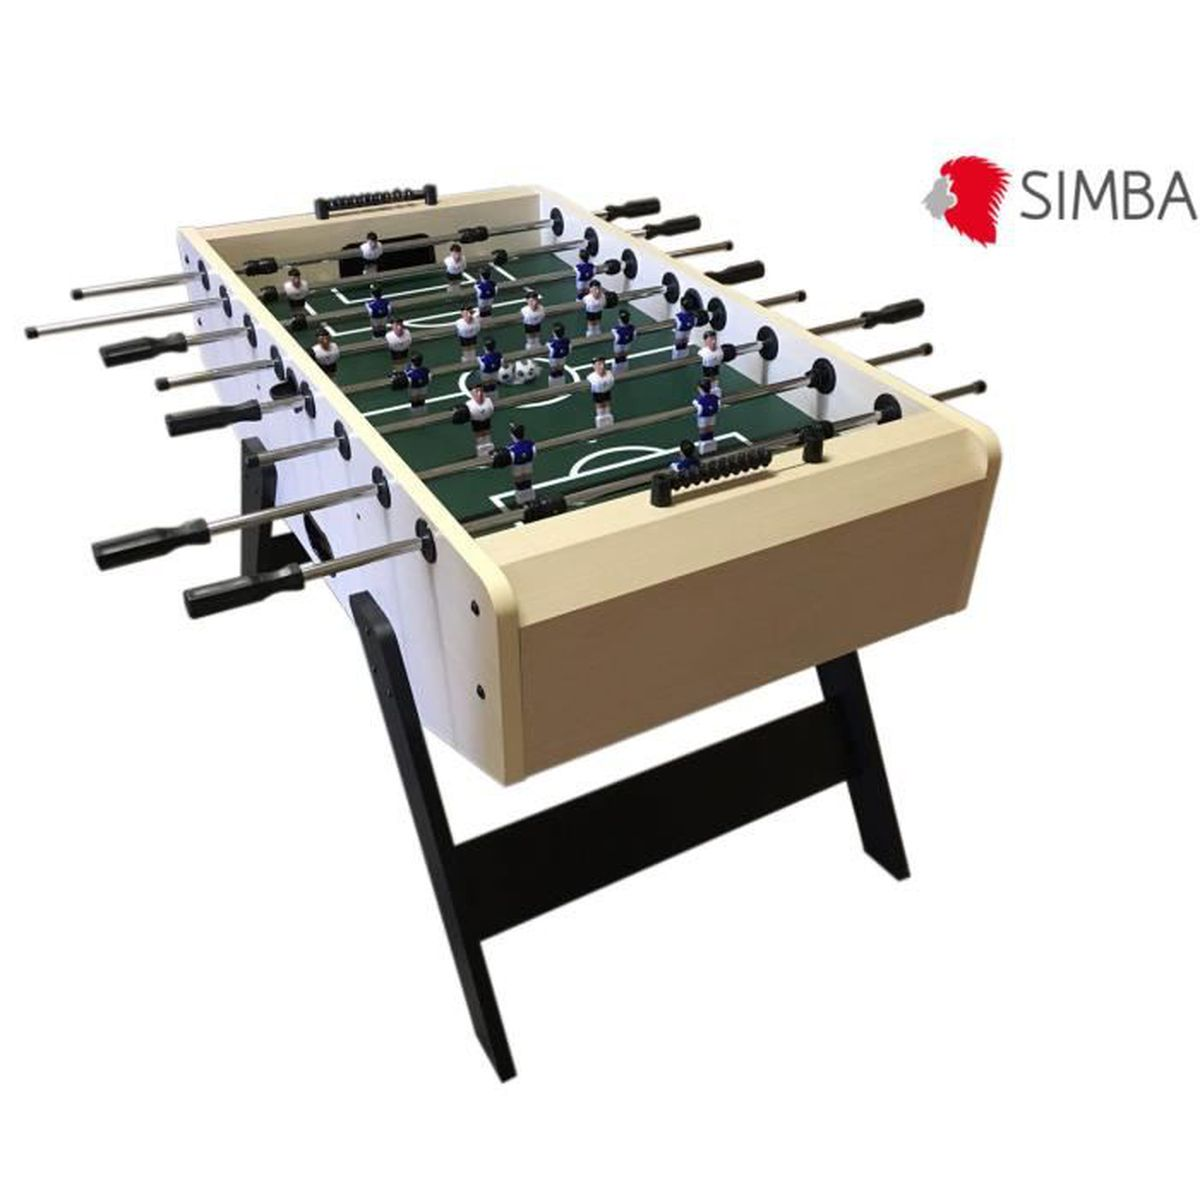 babyfoot baby foot table soccer table soccer table de jeu football bernabeu robuste durable. Black Bedroom Furniture Sets. Home Design Ideas